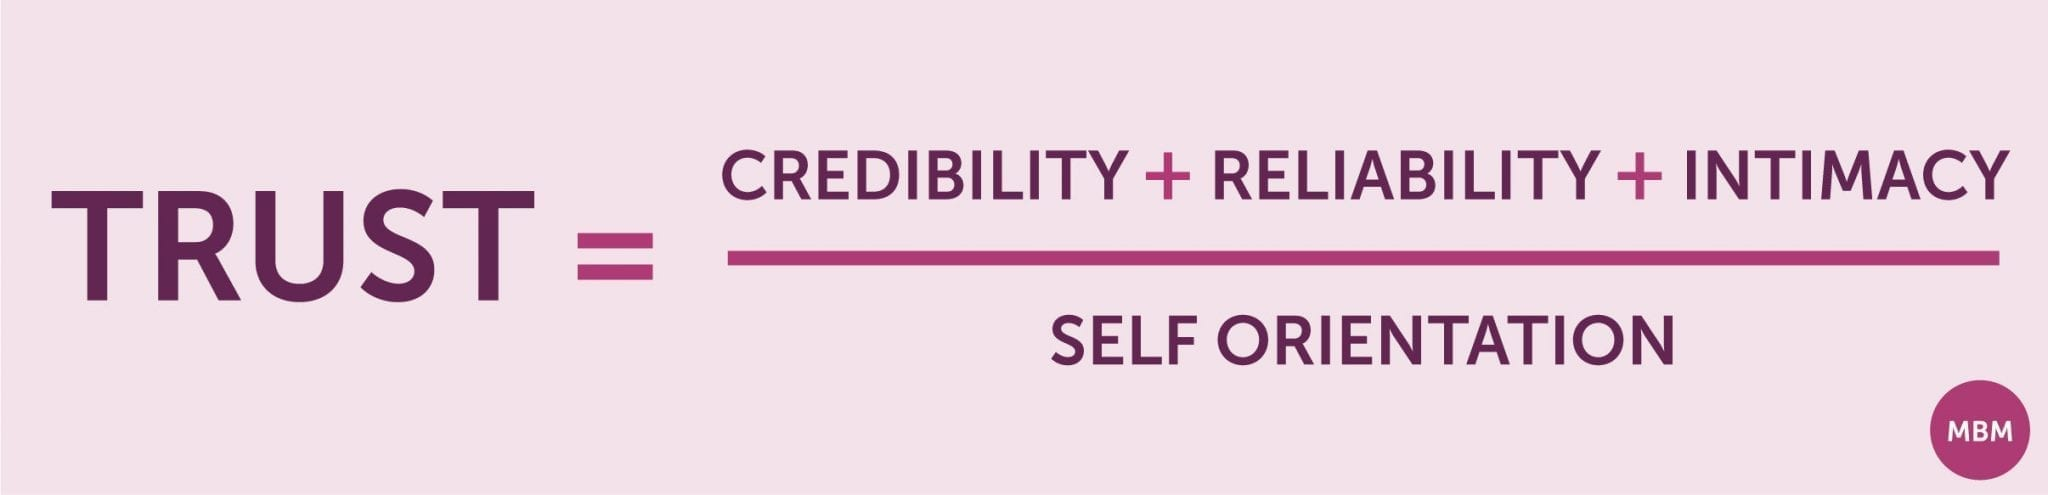 Trust equals Creditbility + Reliability + Intimacy divided by Self Orientation